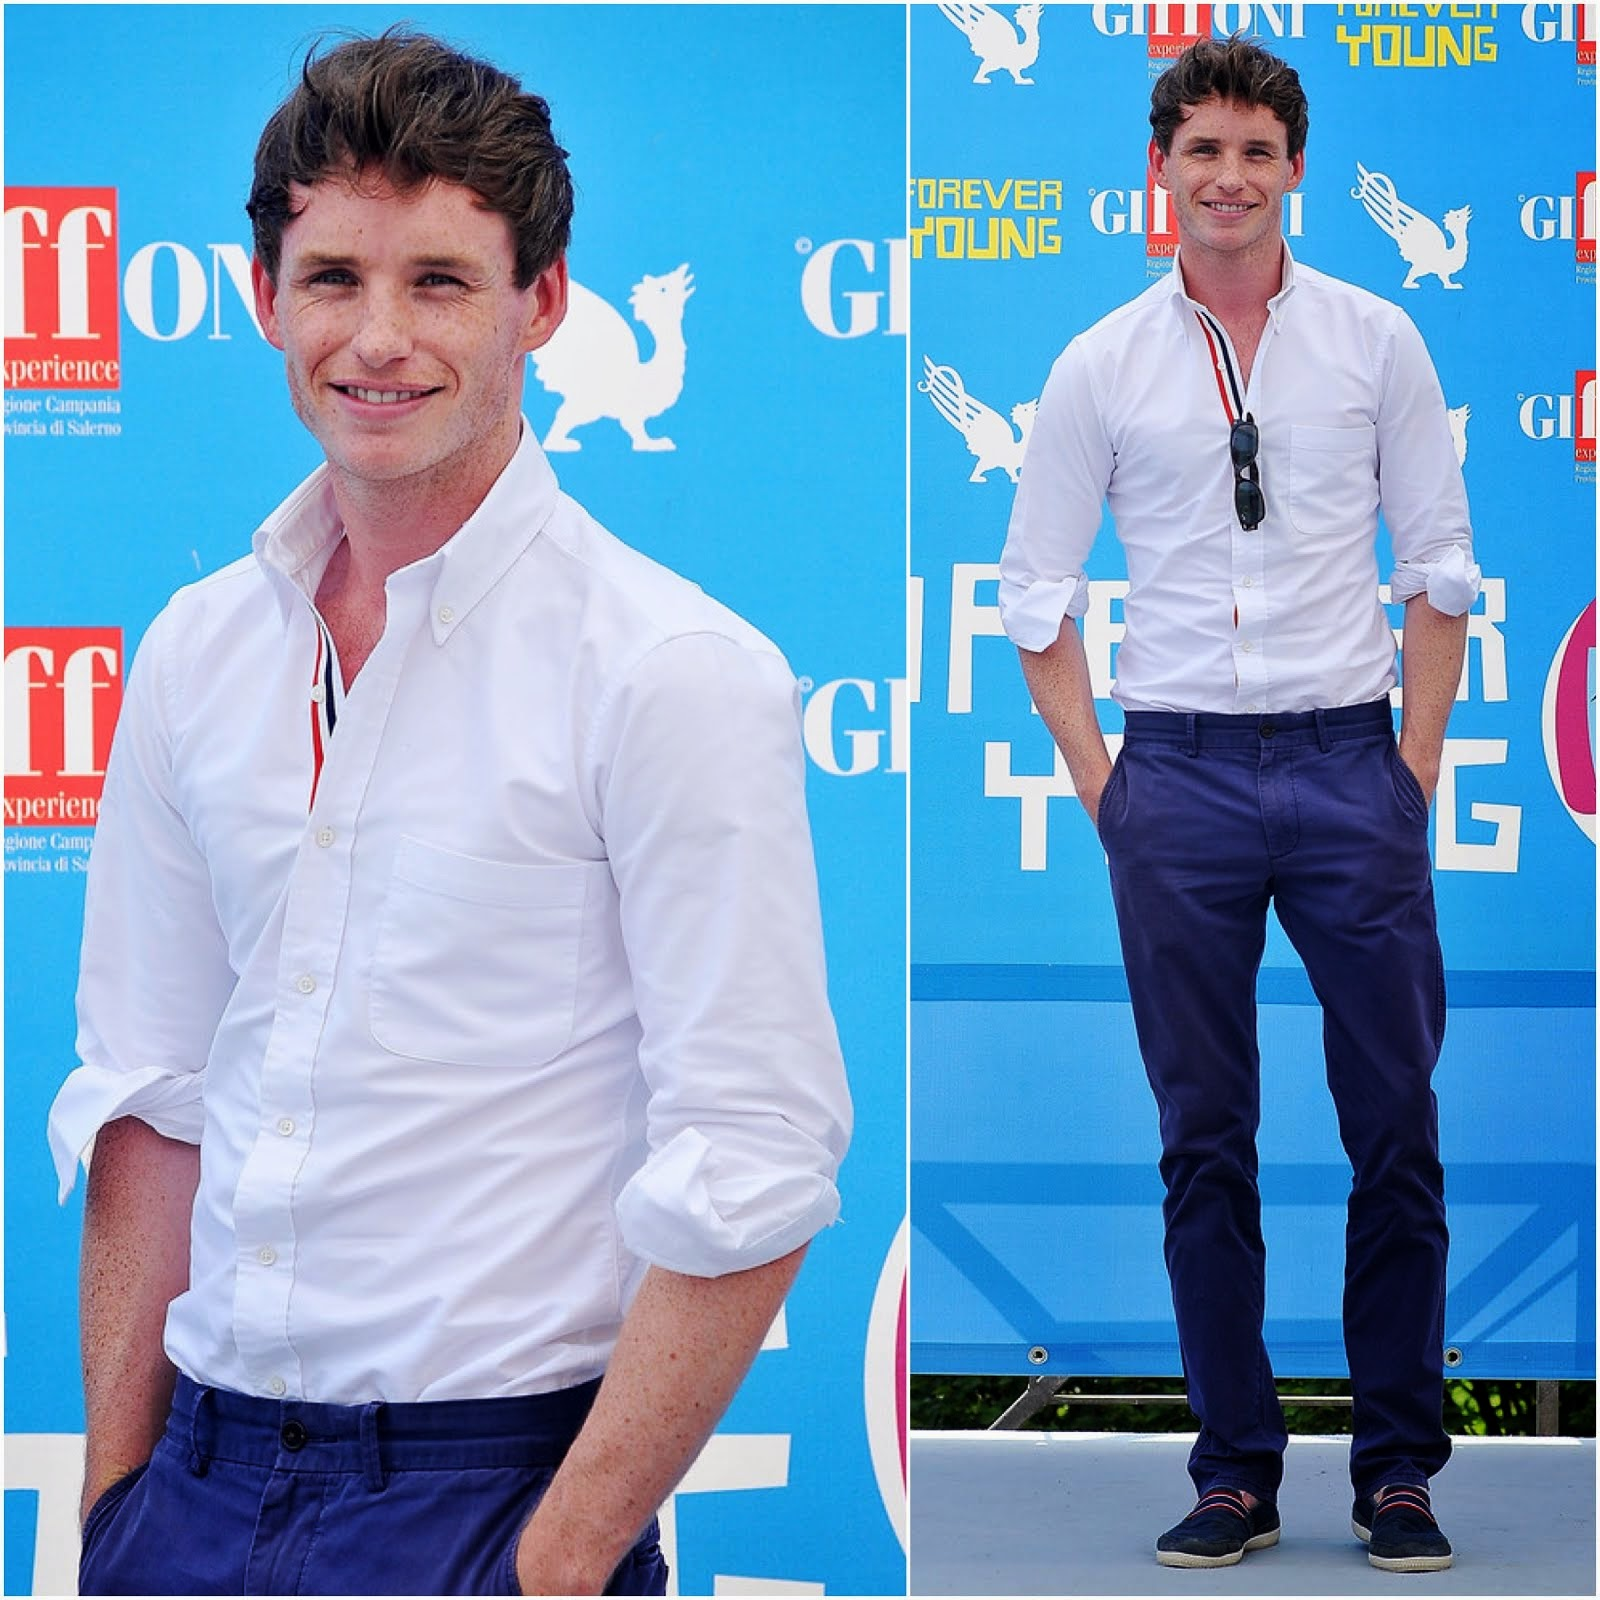 00O00 Menswear Blog: Eddie Redmayne in Thom Browne MEN'S RWB RED WHITE BLUE PLACKET BUTTON-DOWN OXFORD SHIRT- 2013 Giffoni Film Festival July 2013